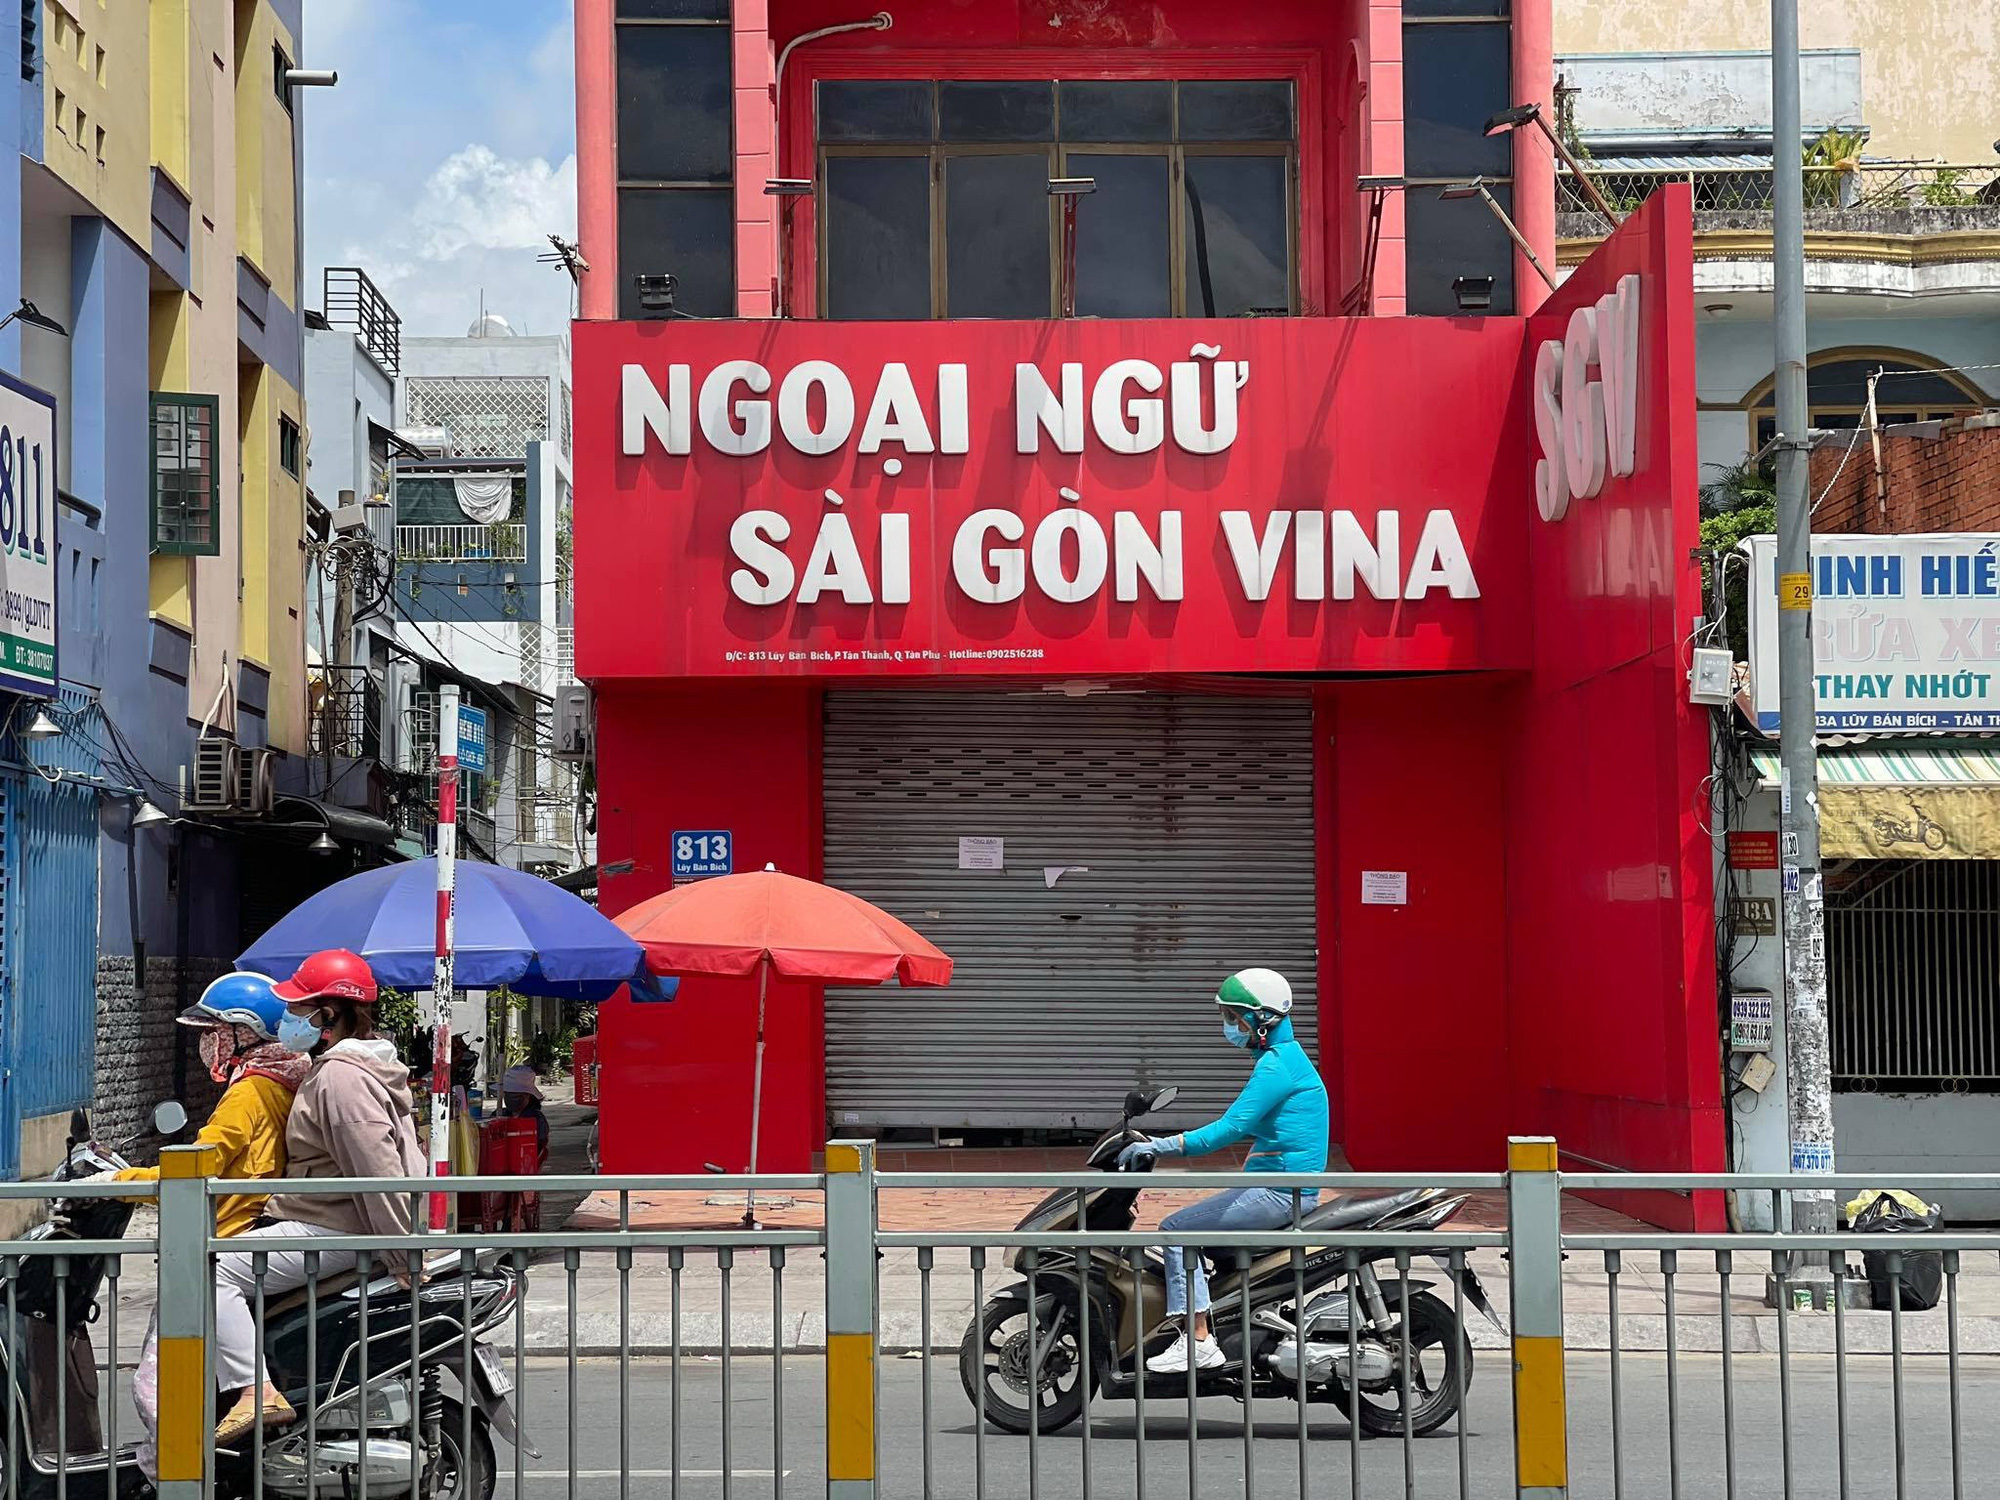 Vietnamese foreign language center owes teachers' payment for two years